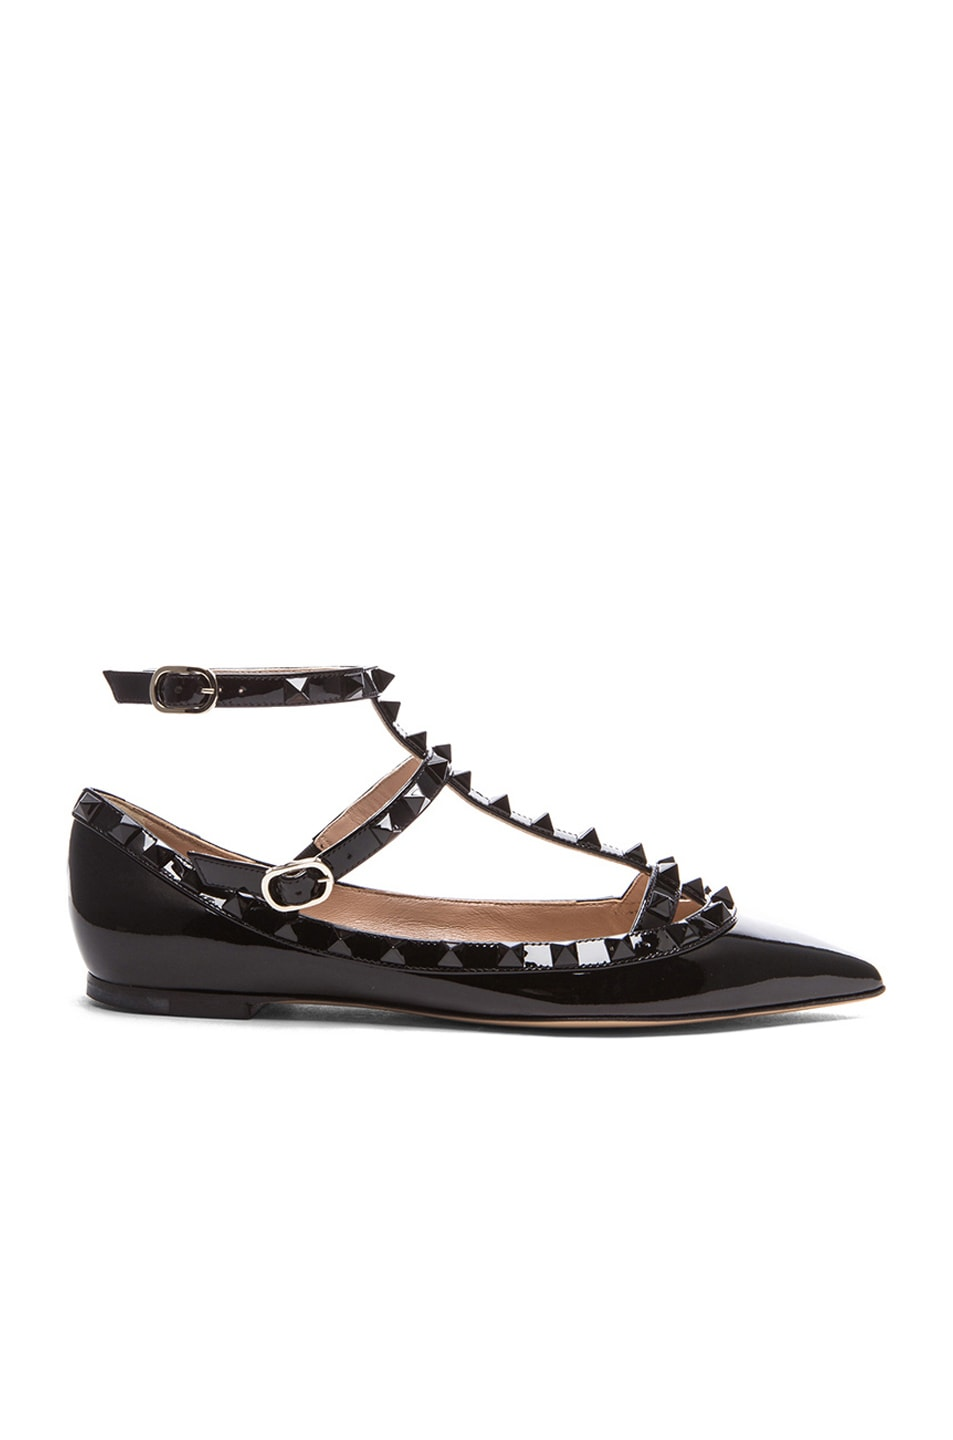 valentino rockstud punkouture patent ballerina flats in black fwrd. Black Bedroom Furniture Sets. Home Design Ideas